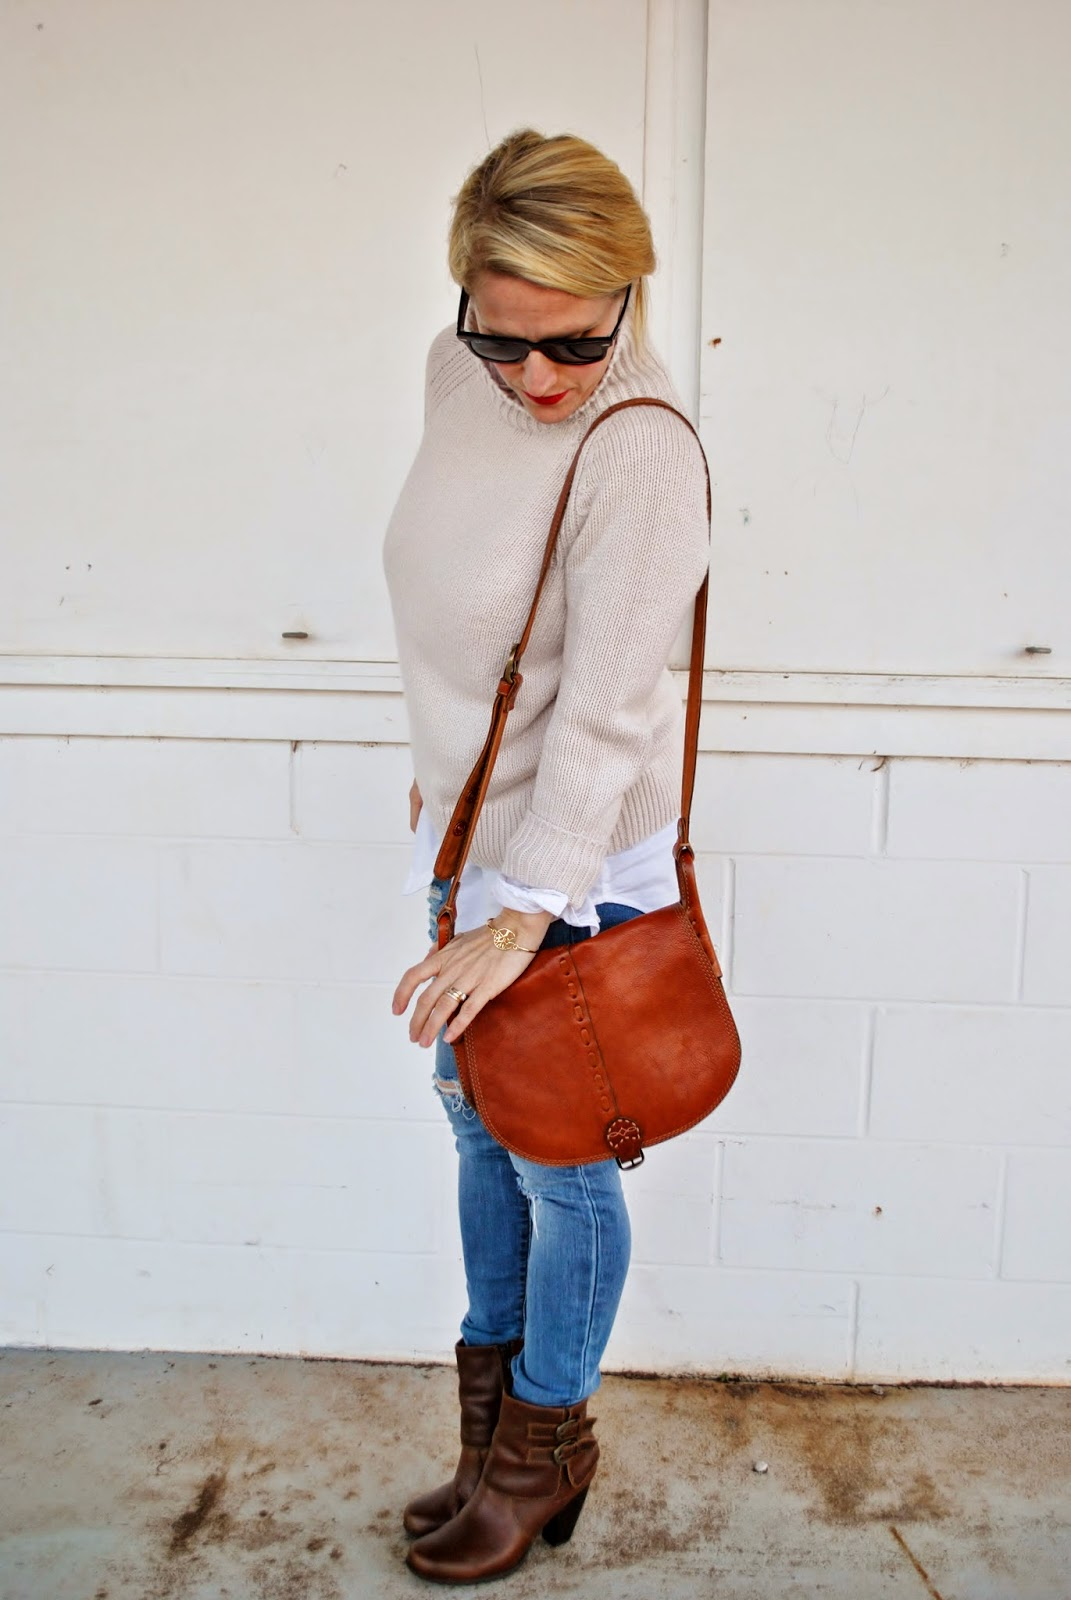 Cognac Boots, Topshop Destroyed Skinny Jeans, Madewell Skinny Jeans